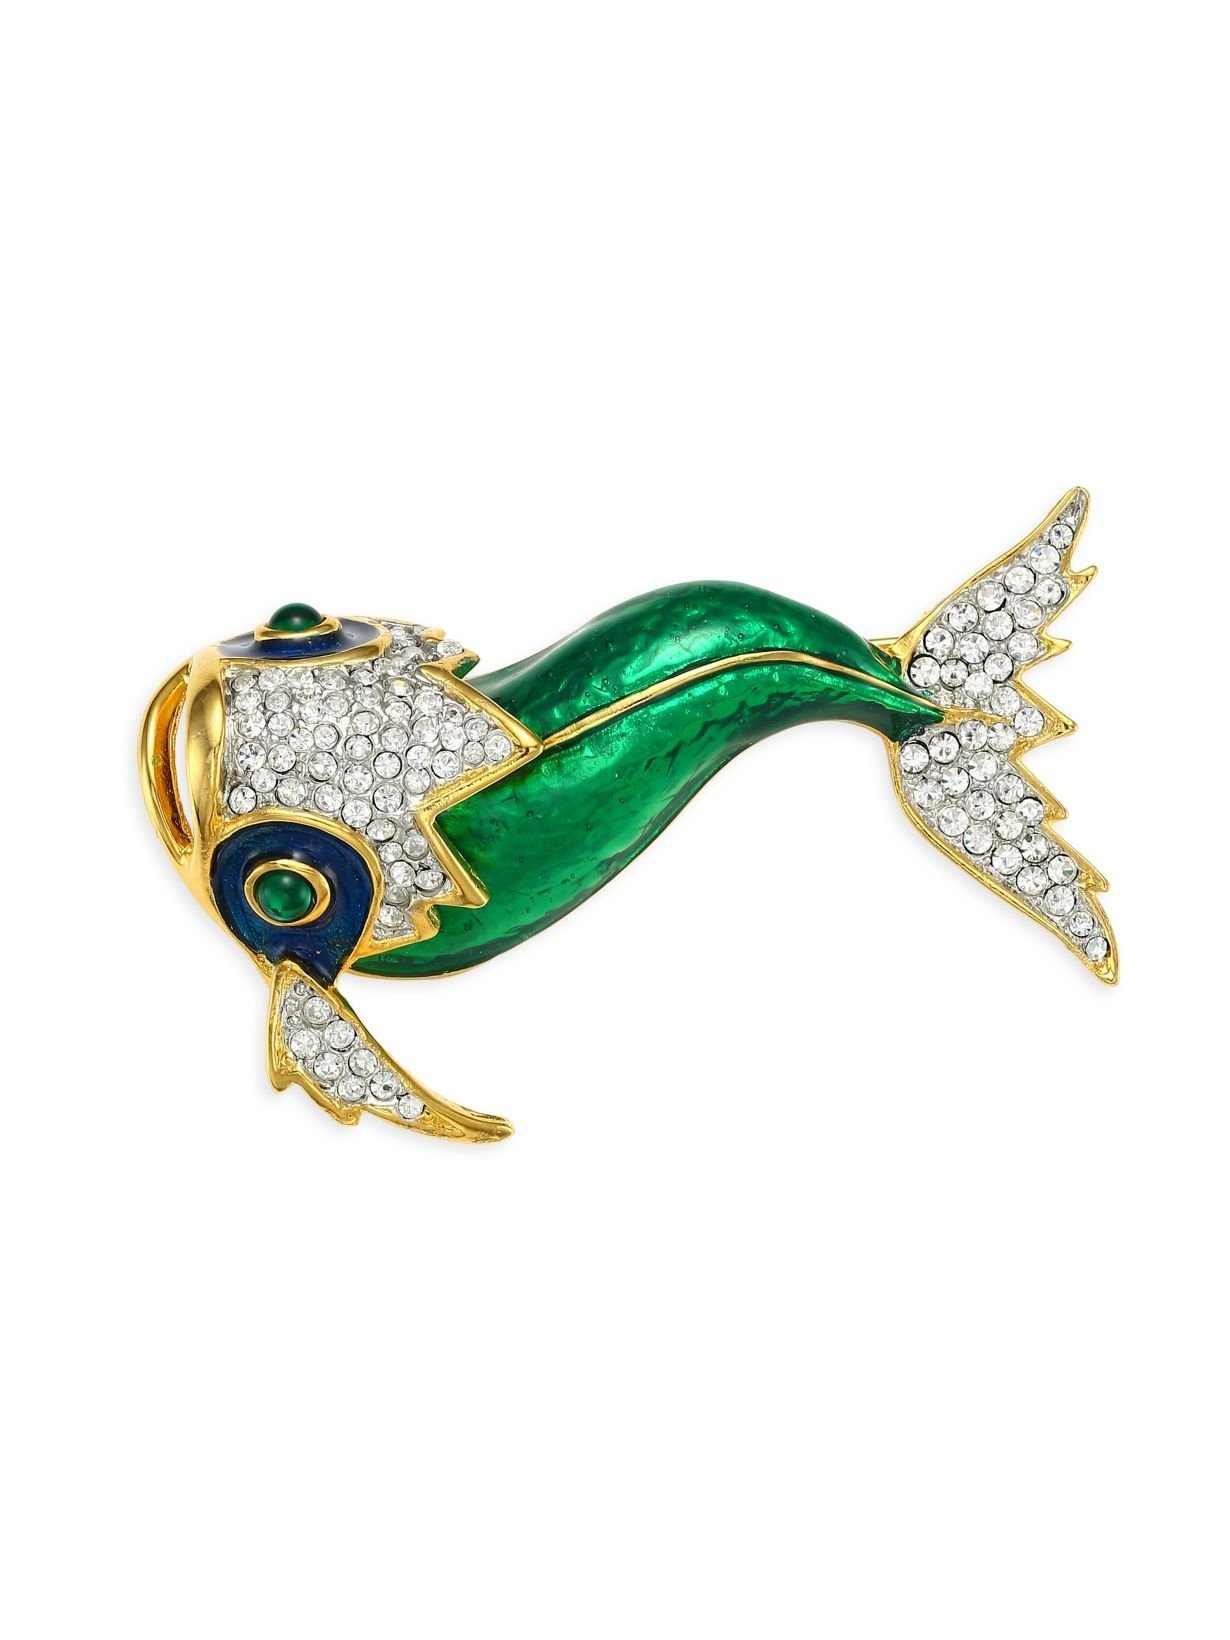 HamptonGems Kenneth Jay Lane, Green Enamel KOI PIN, with Pave Crystals Accents